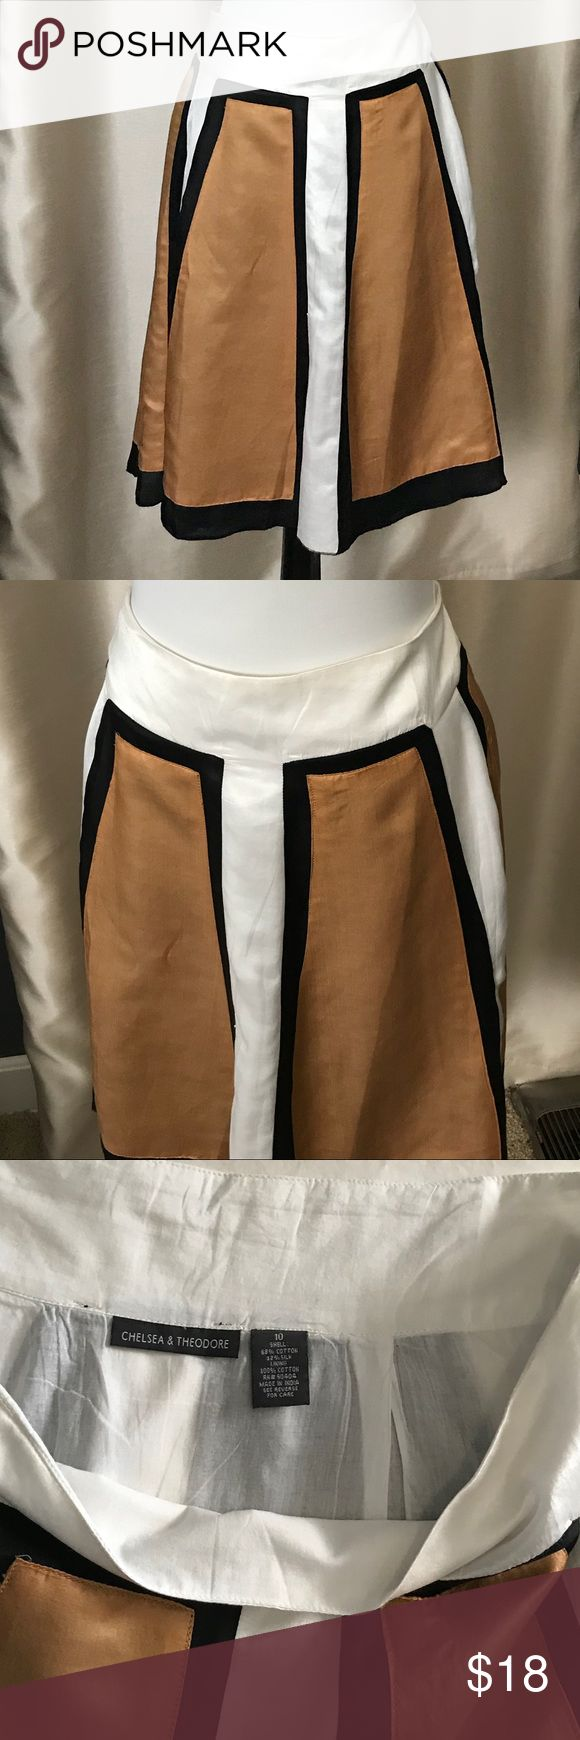 A Line silky color block skirt Silk and cotton A Line color blocked skirt. Size 10. Cotton lining.  No tags but never worn. Chelsea & Thoedore Skirts A-Line or Full